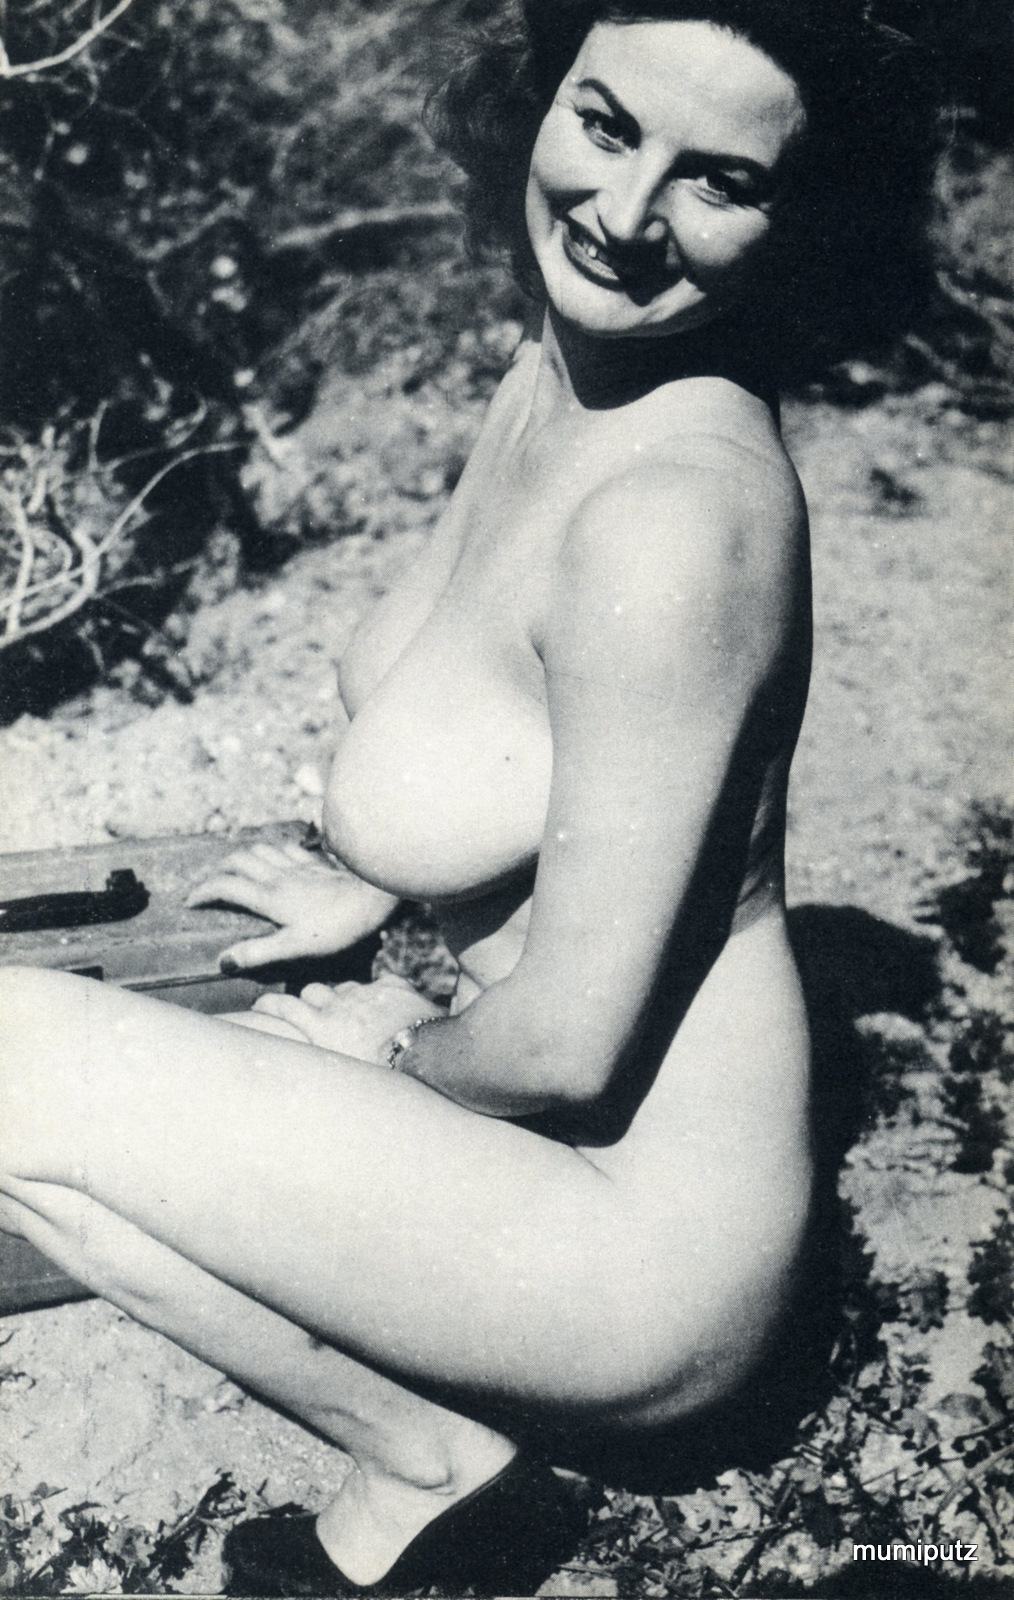 Marilyn knight nude nackt photo